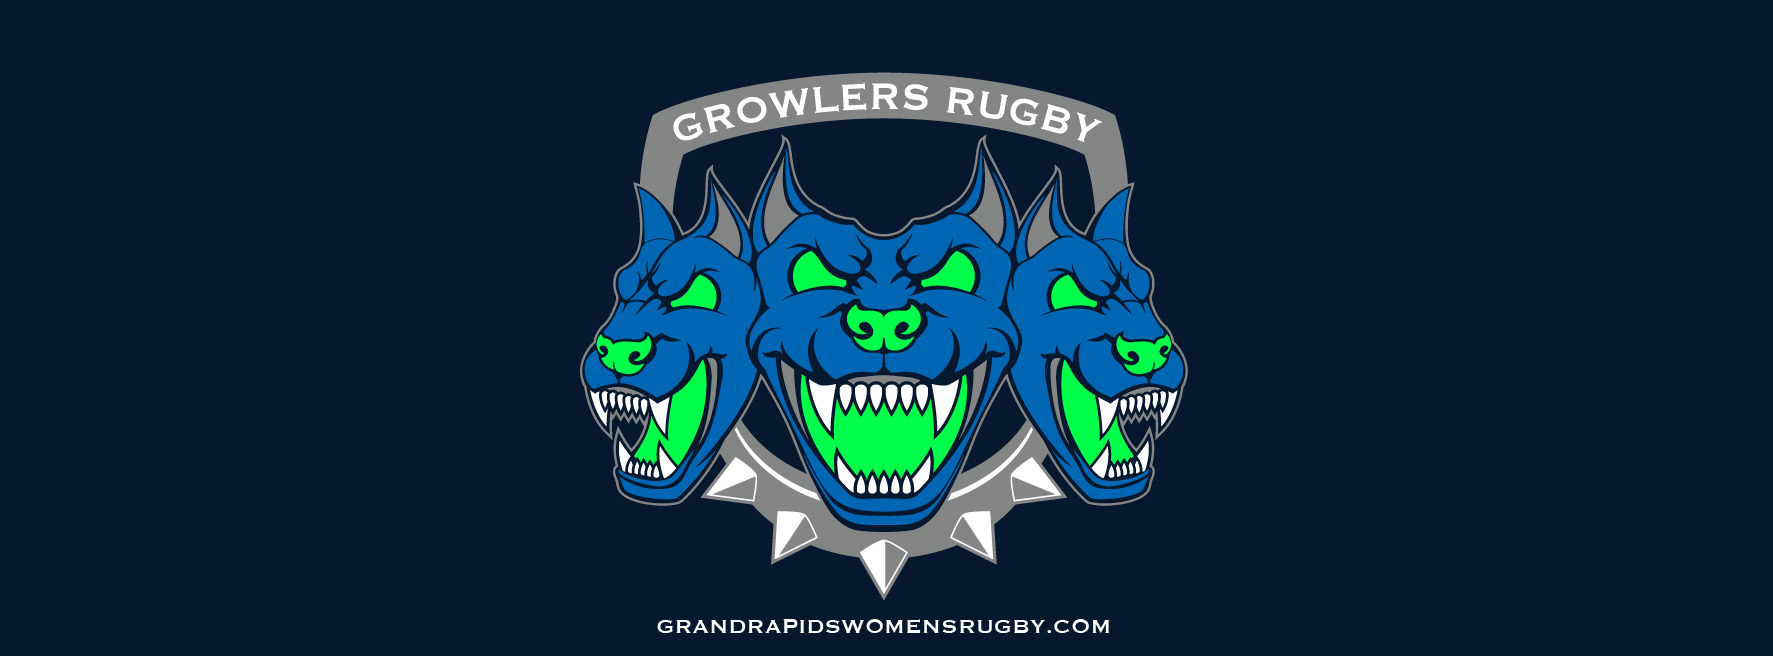 RUGBY GROWLERS LOGO 2018 - master-10.jpeg